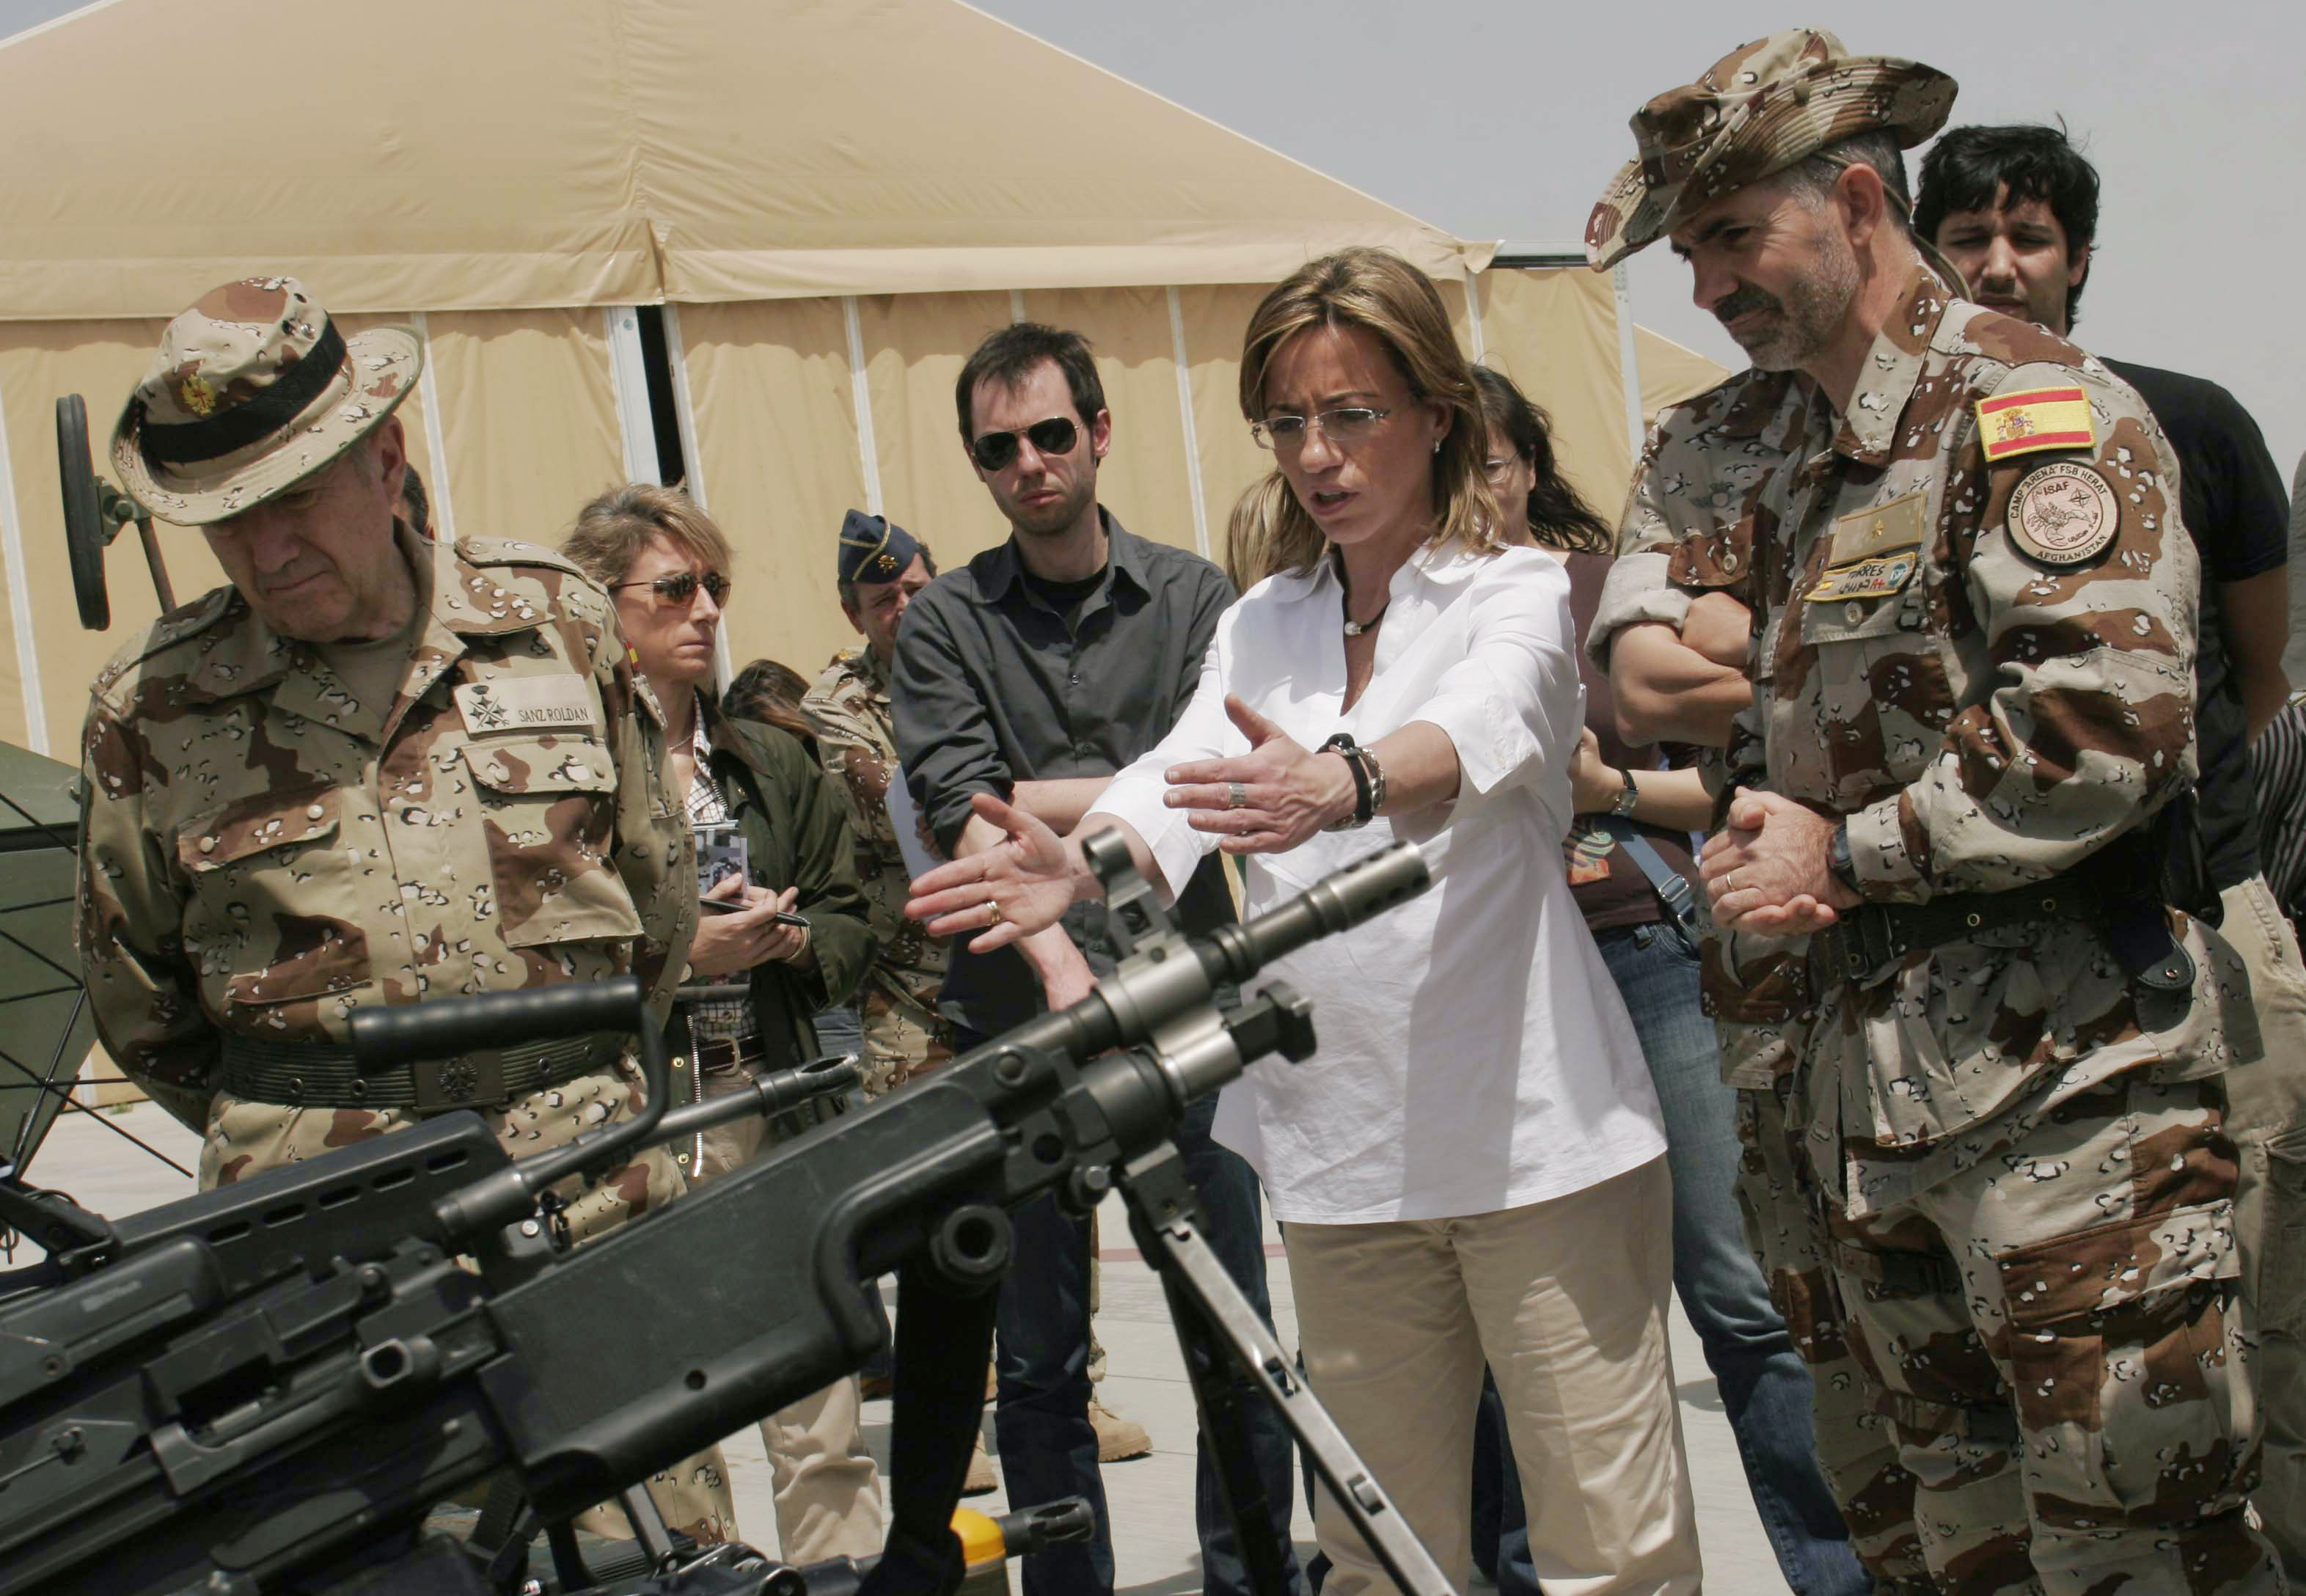 Spain's Defence Minister Carme Chacon, second right, gestures as she meets Spanish troops who are part of the International Security Assistant Force (ISAF) after she arrived in Herat province southwest of Kabul, Afghanistan